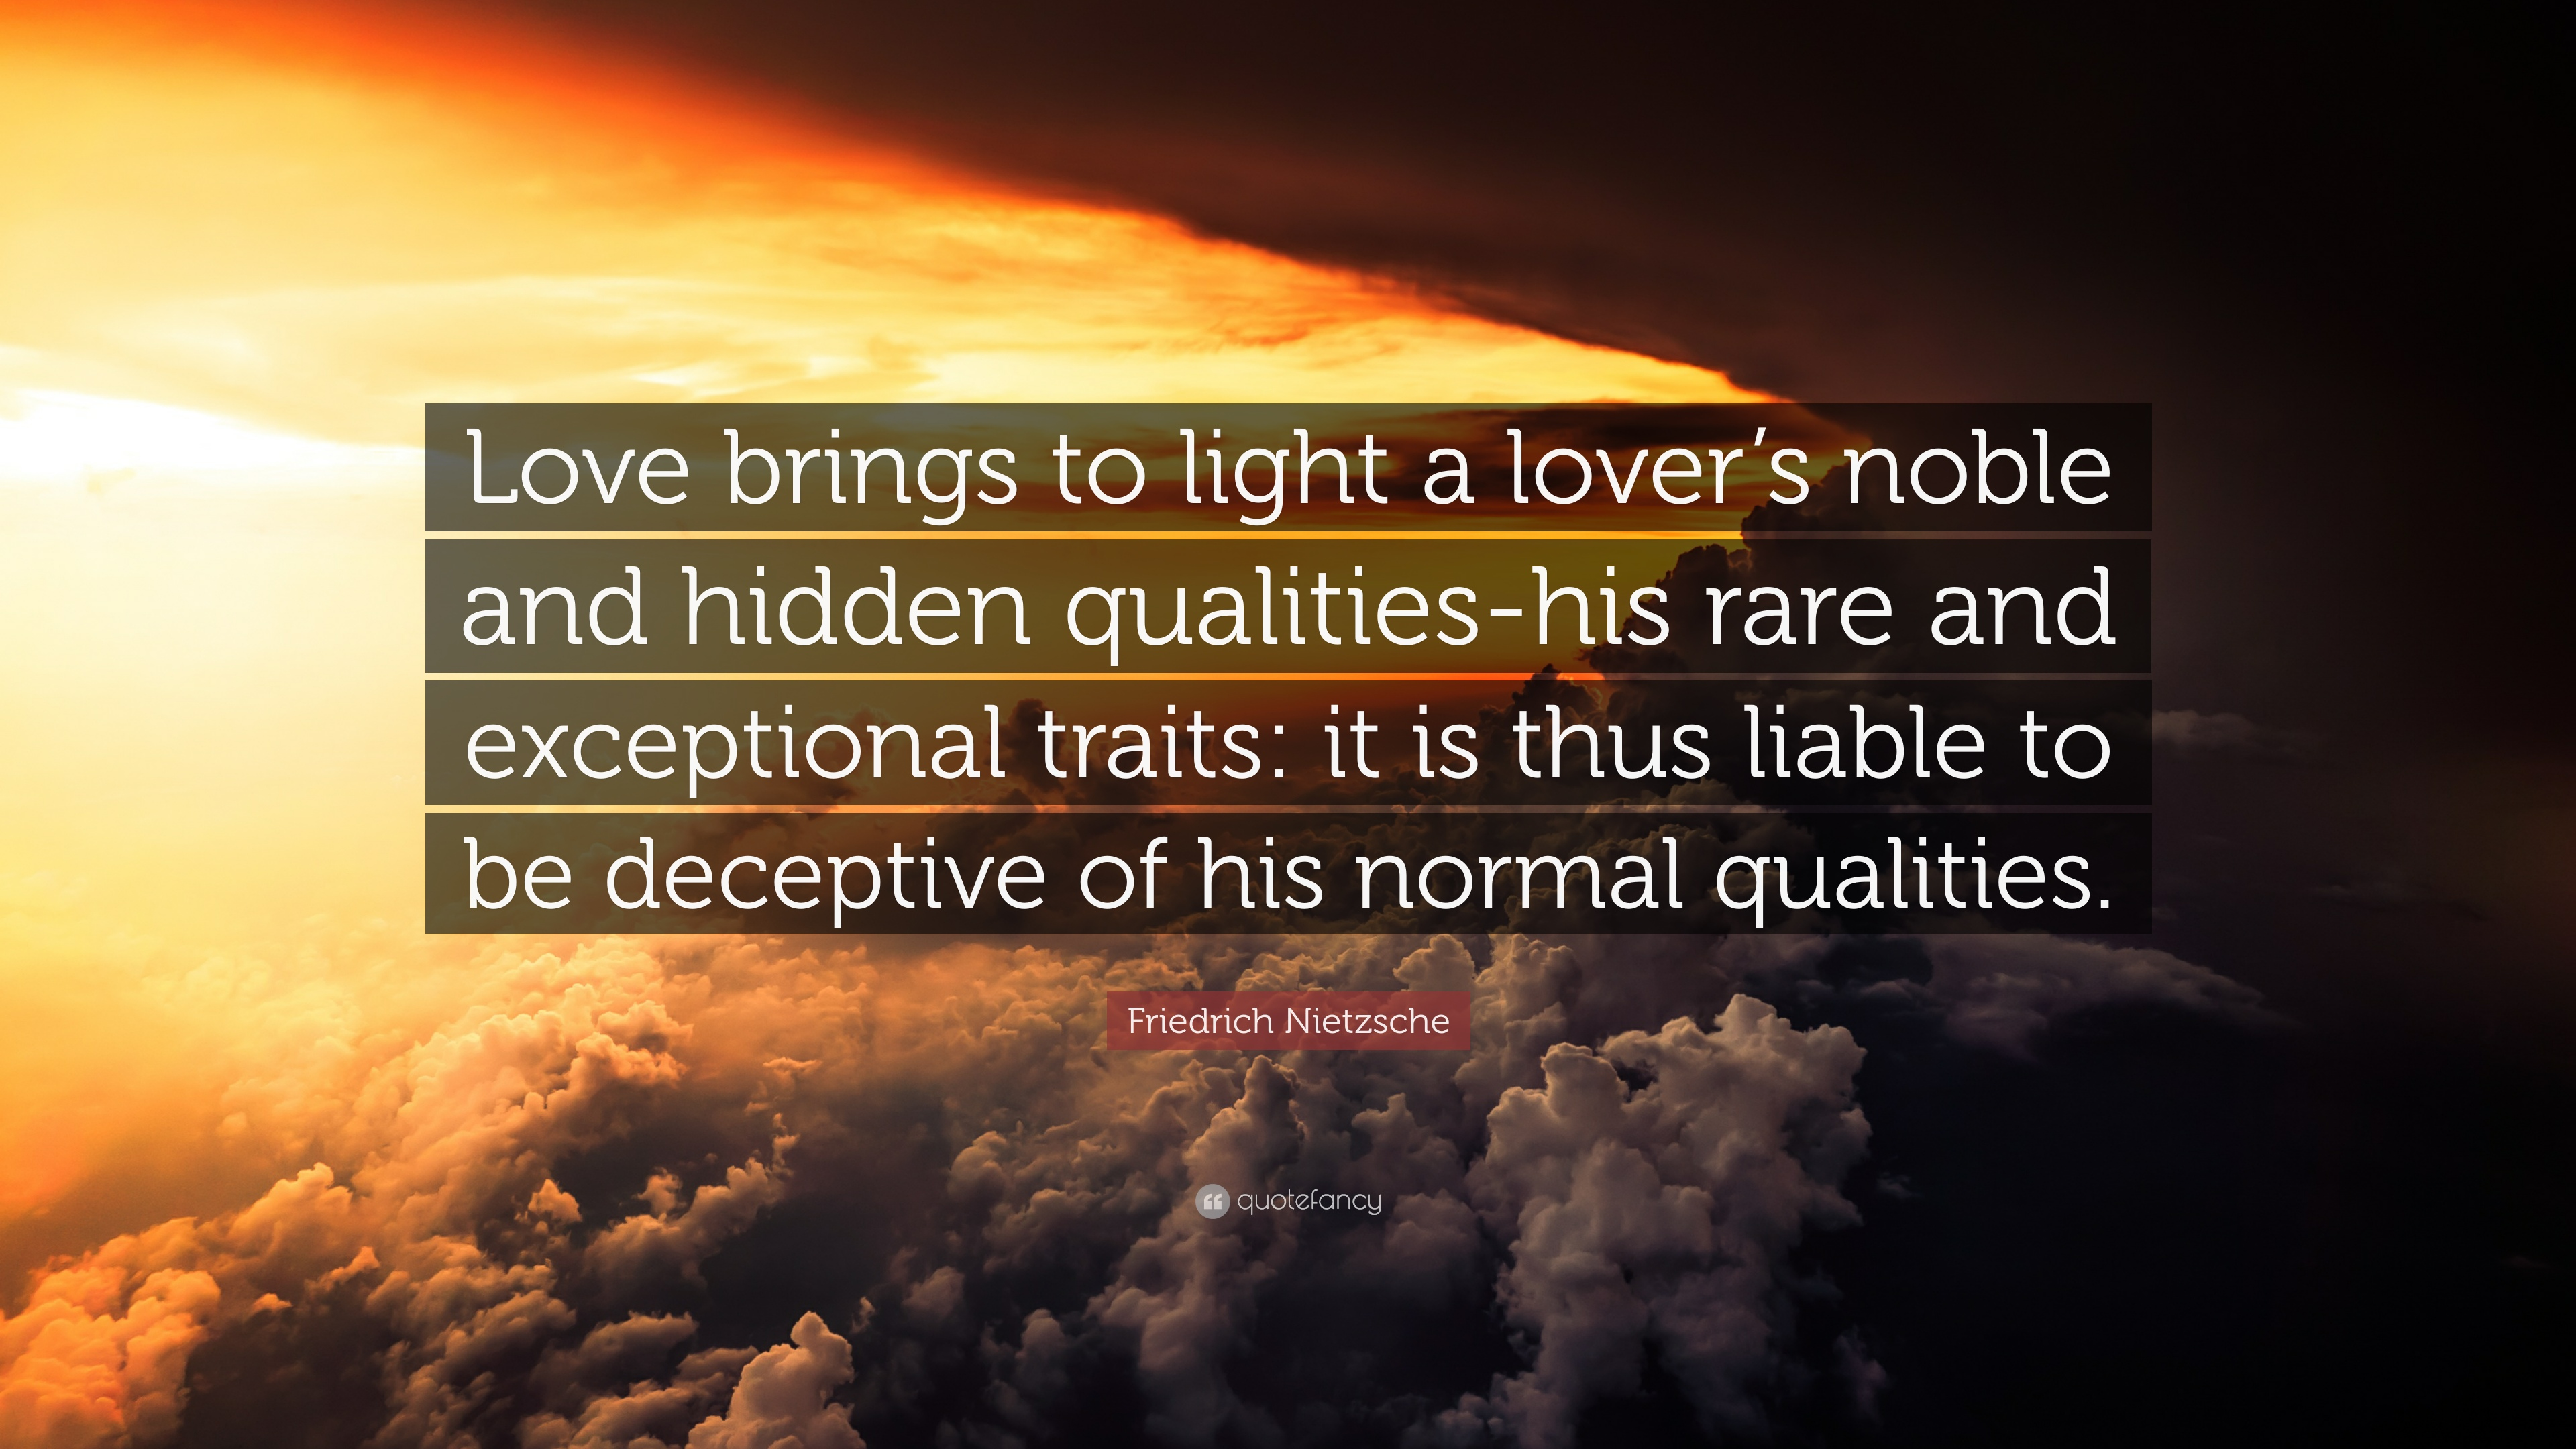 Friedrich Nietzsche Quote Love Brings To Light A Lovers Noble And